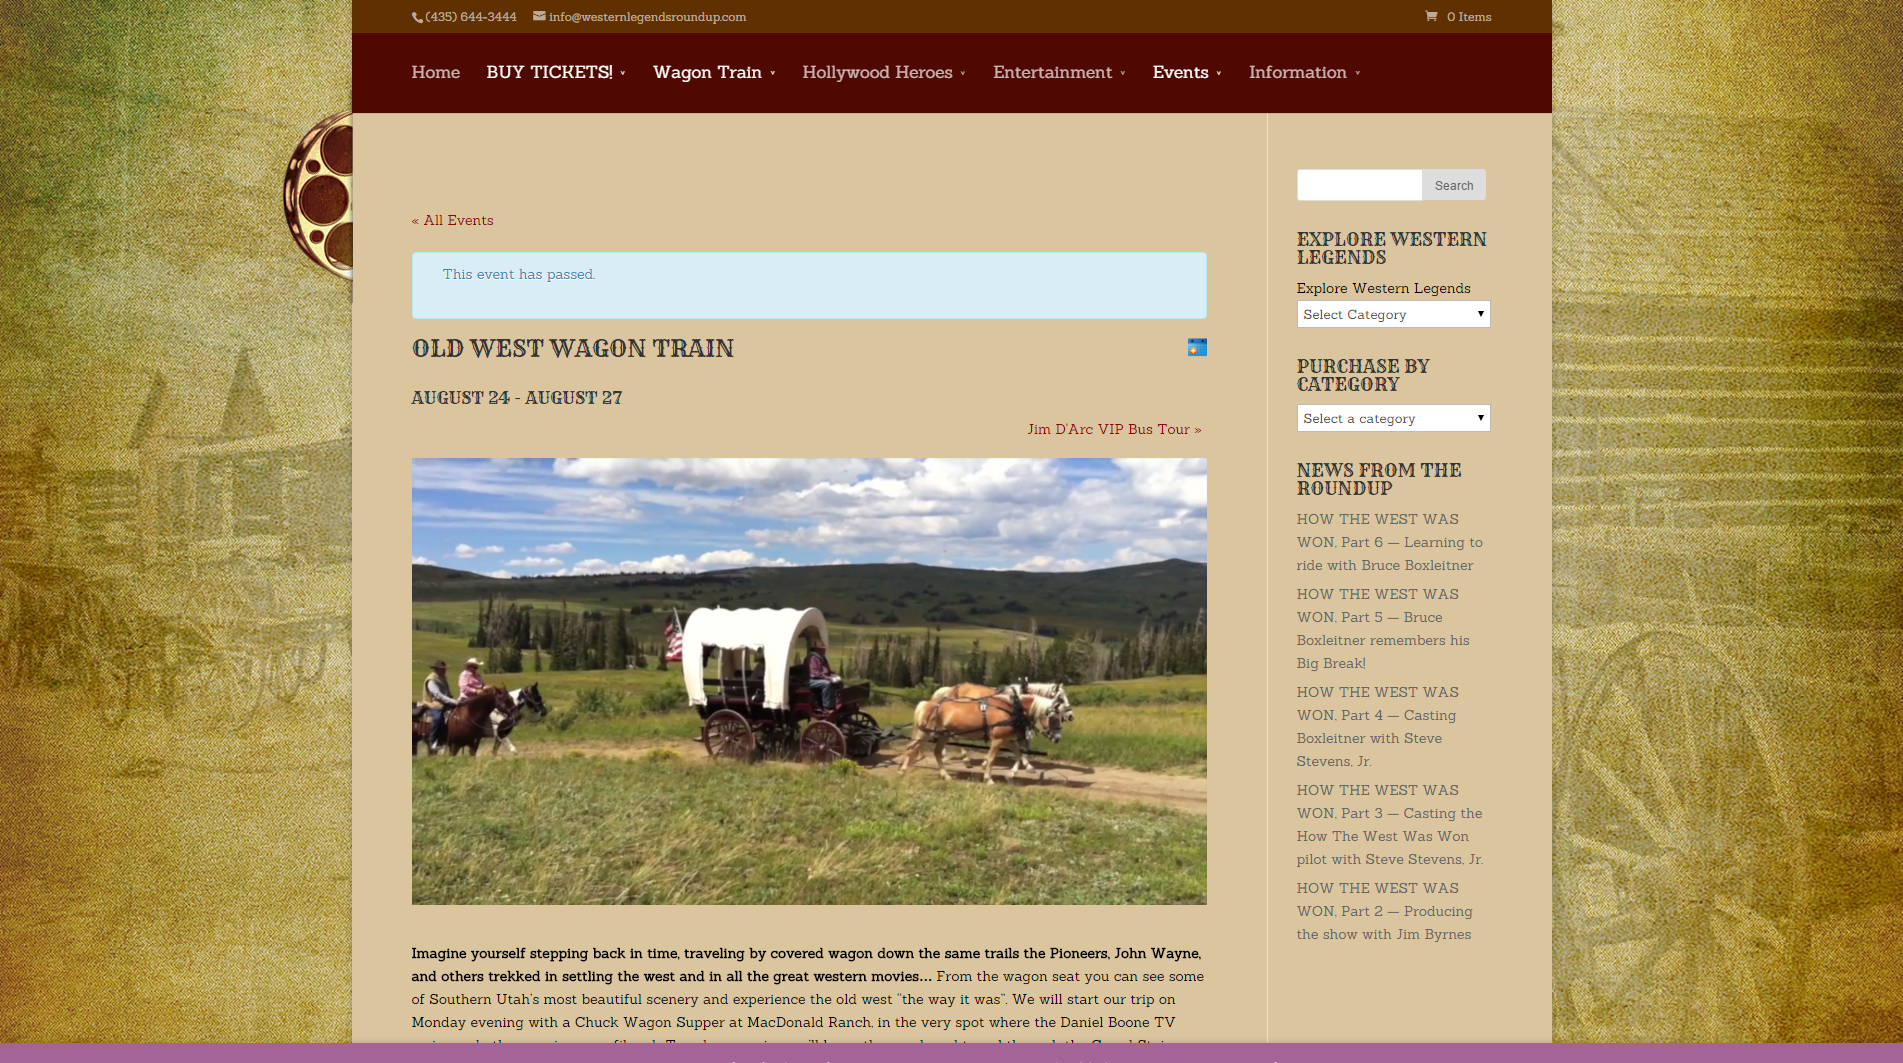 Old West Wagon Train - Western Legends Roundup